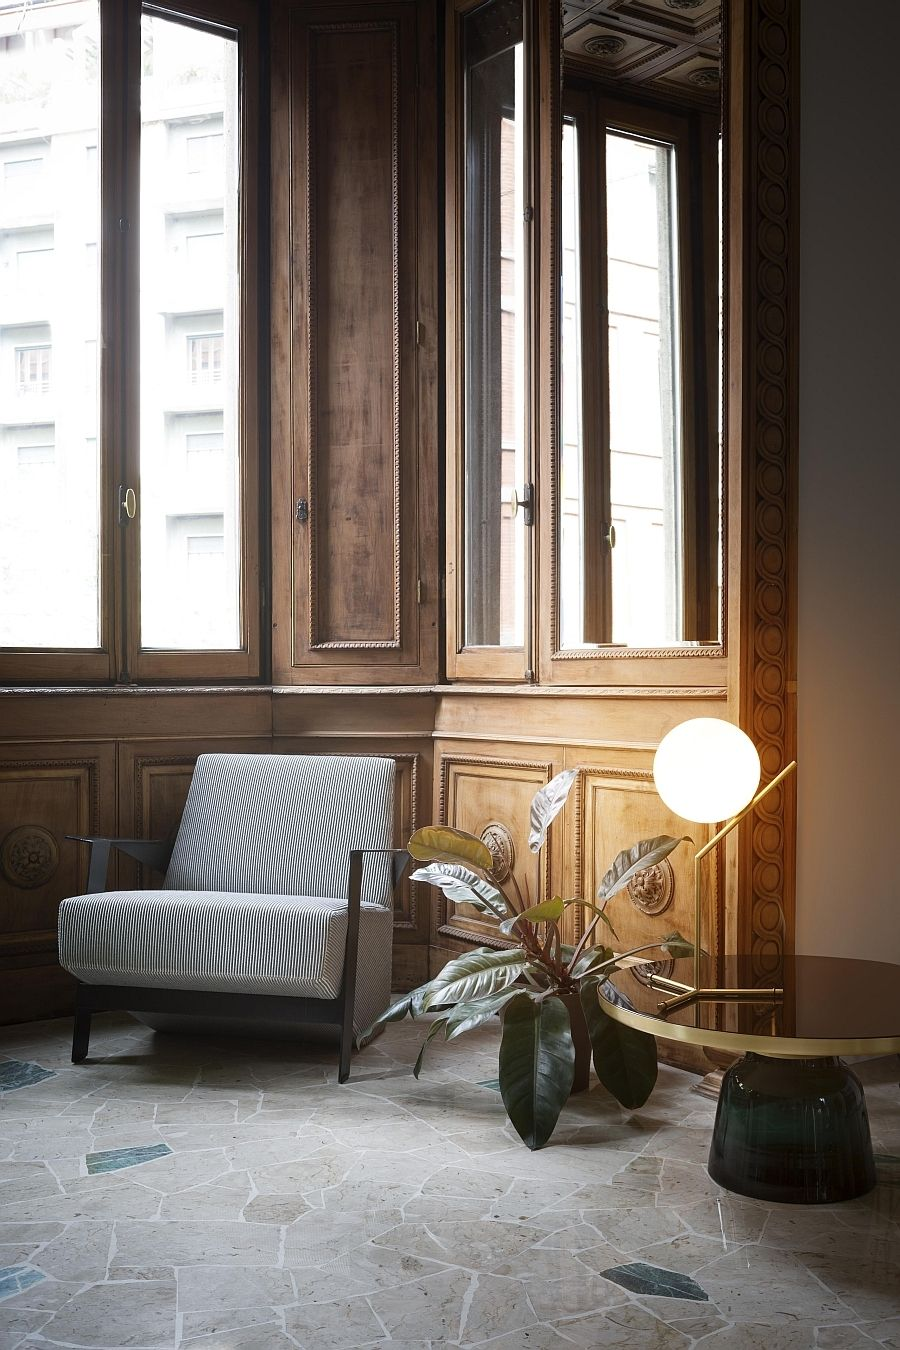 IC Lights With Modern Lights, Aesthetics Are As Essential As The Overall  Ambiance That The Lights Create. The IC Lights Family Is Where Form And  Function ...